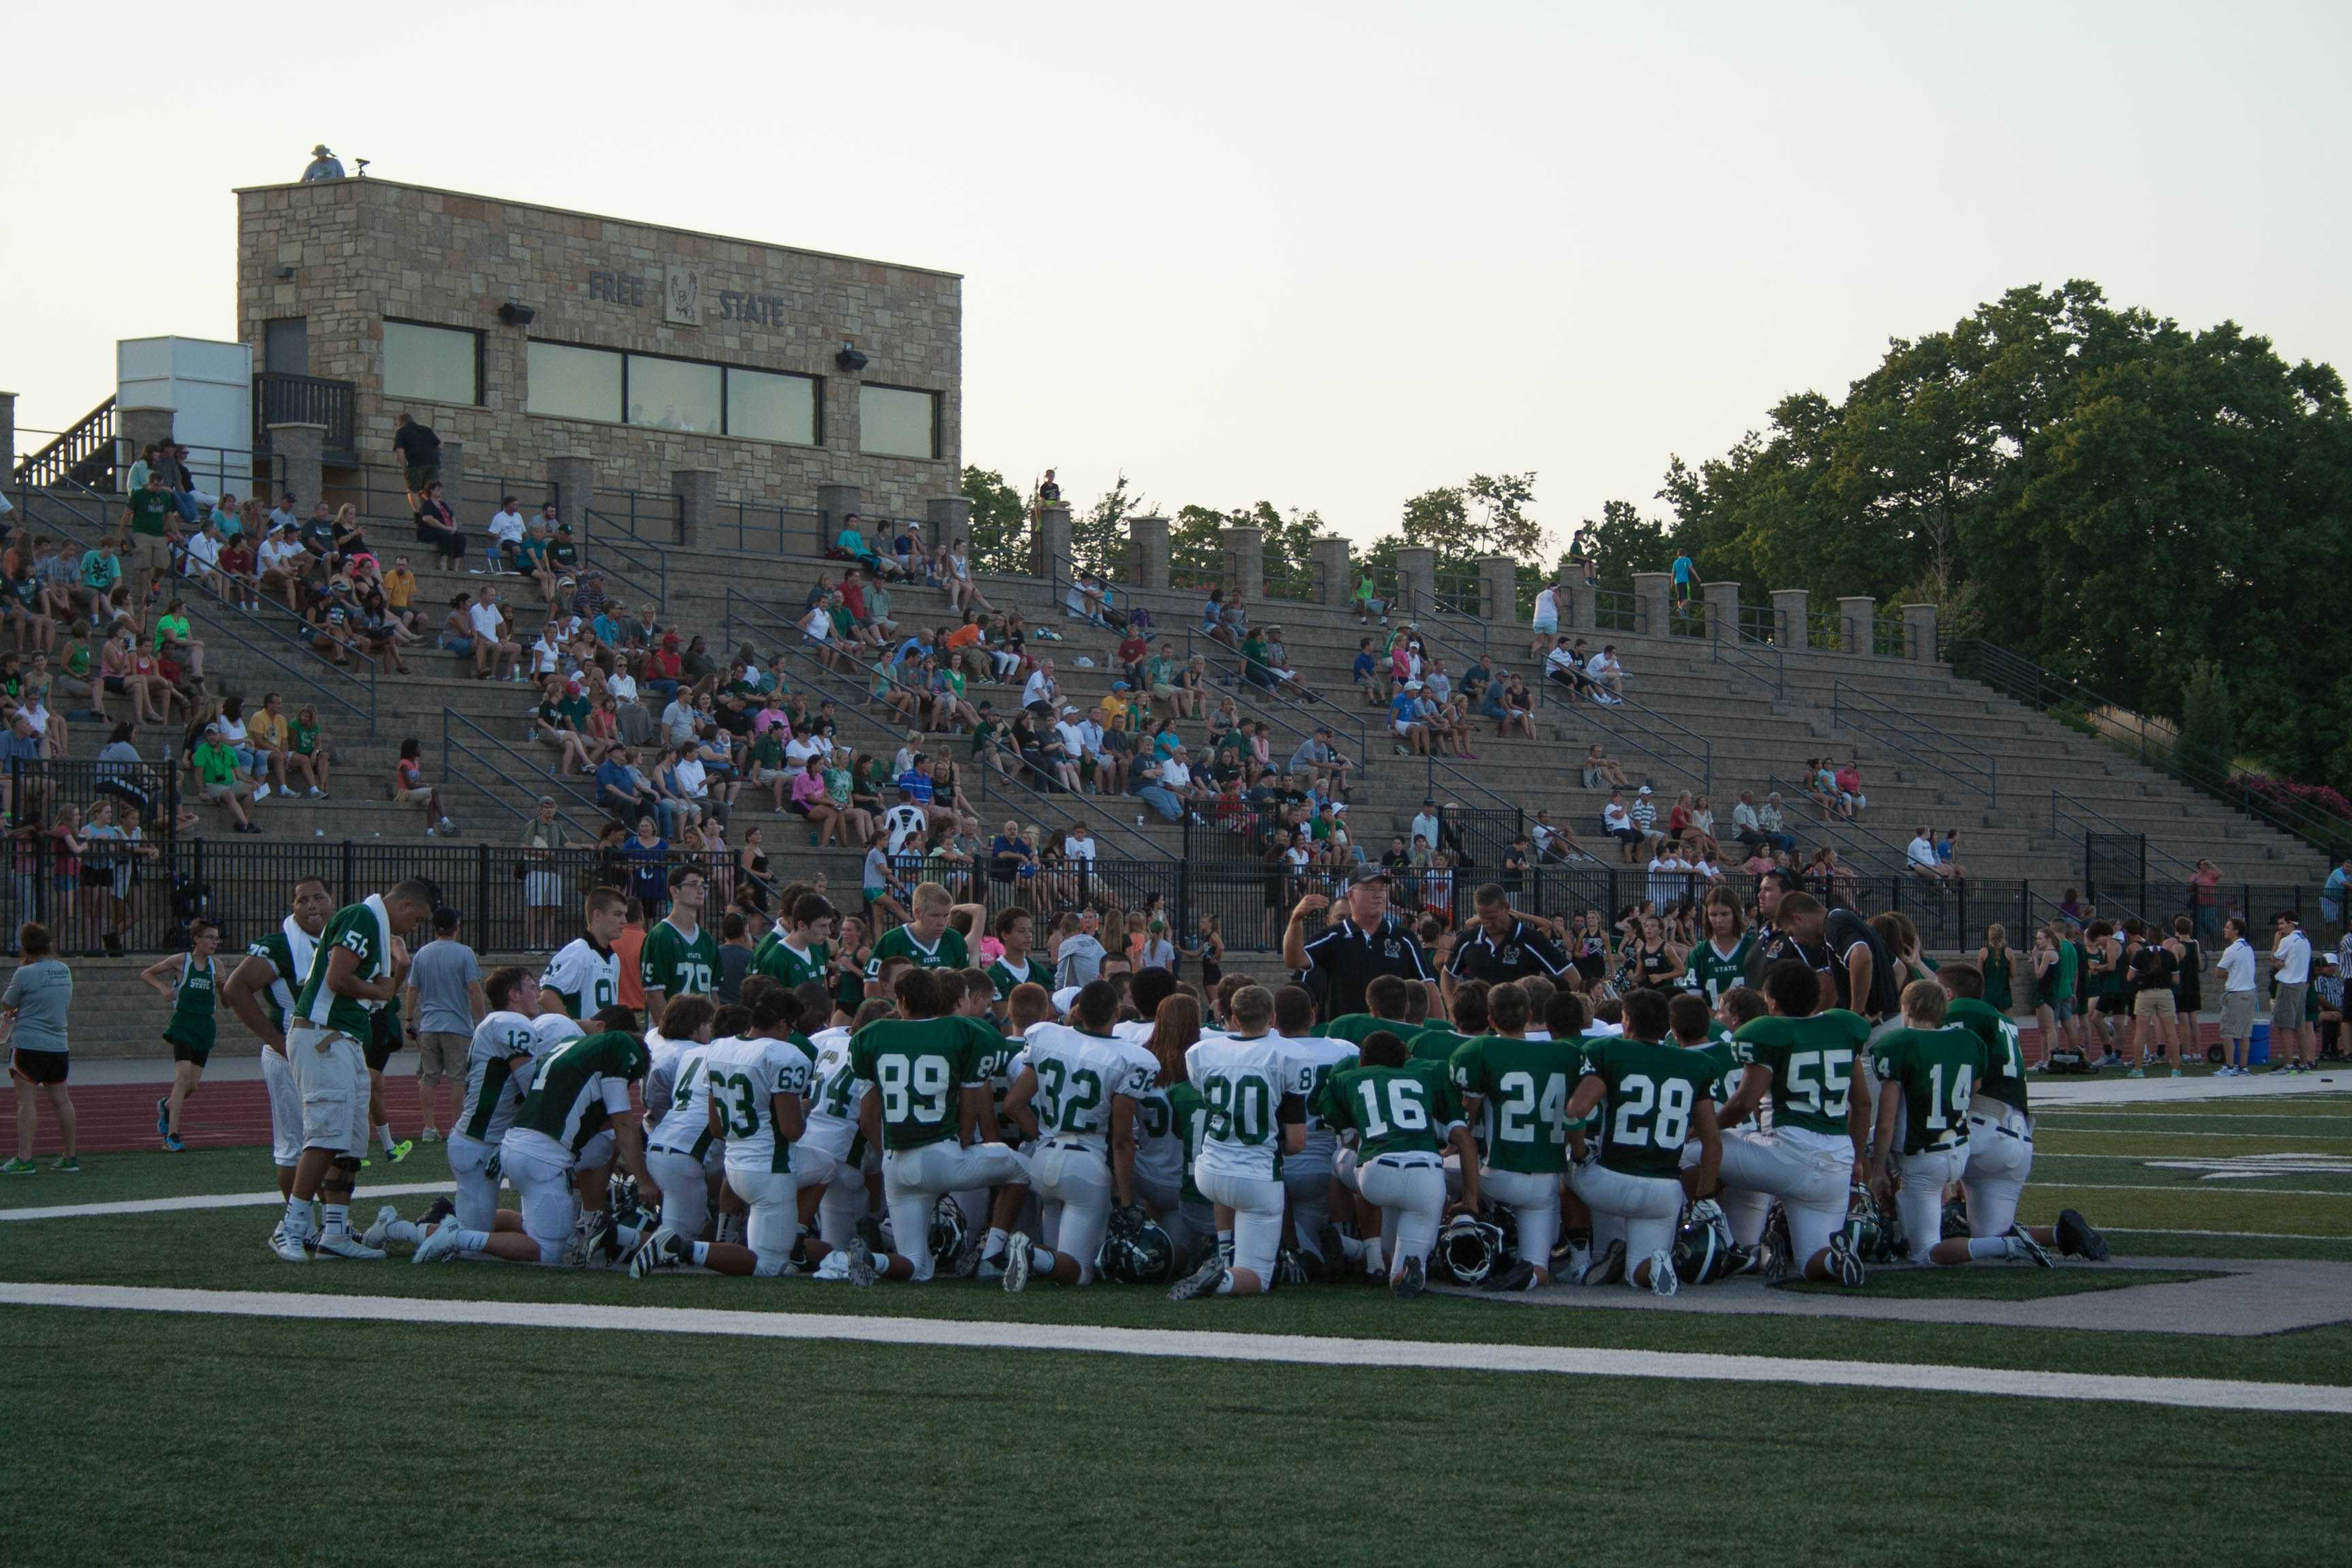 A+stadium+full+of+fans+gets+excited+as+the+football+team+prepares+to+scrimmage.